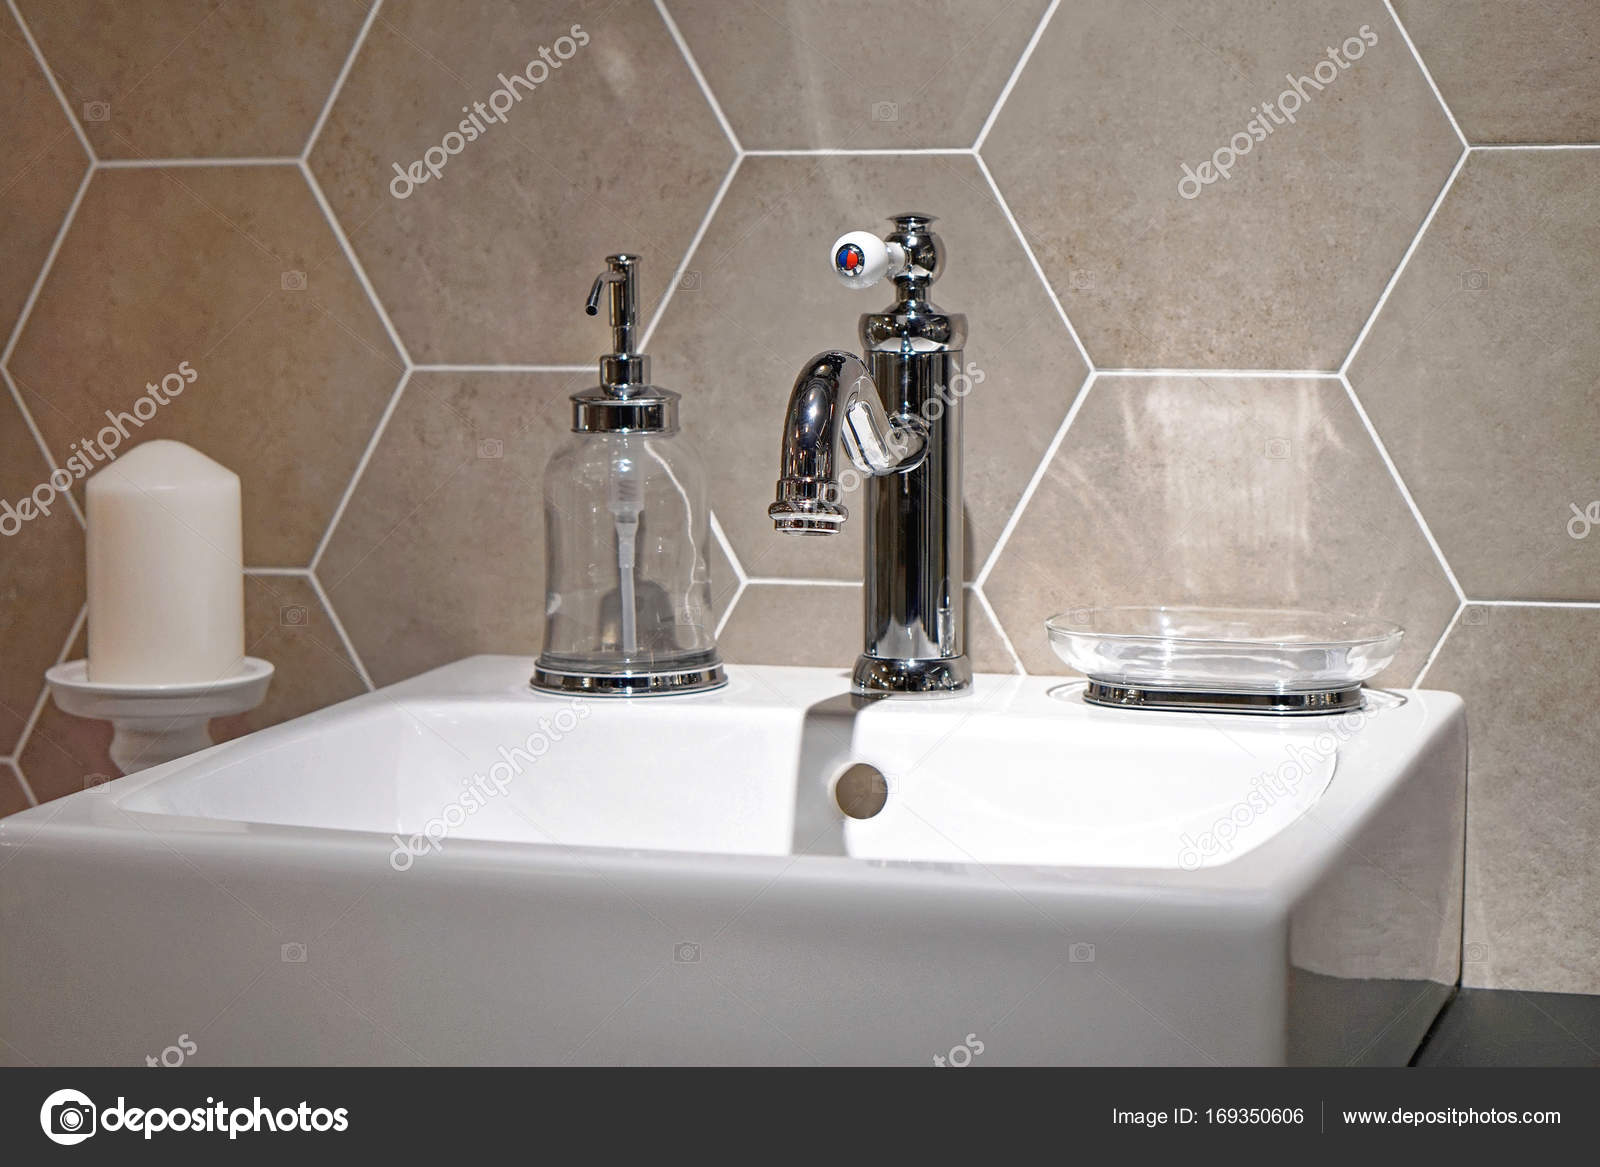 Retro bathroom faucet — Stock Photo © Bradatata #169350606